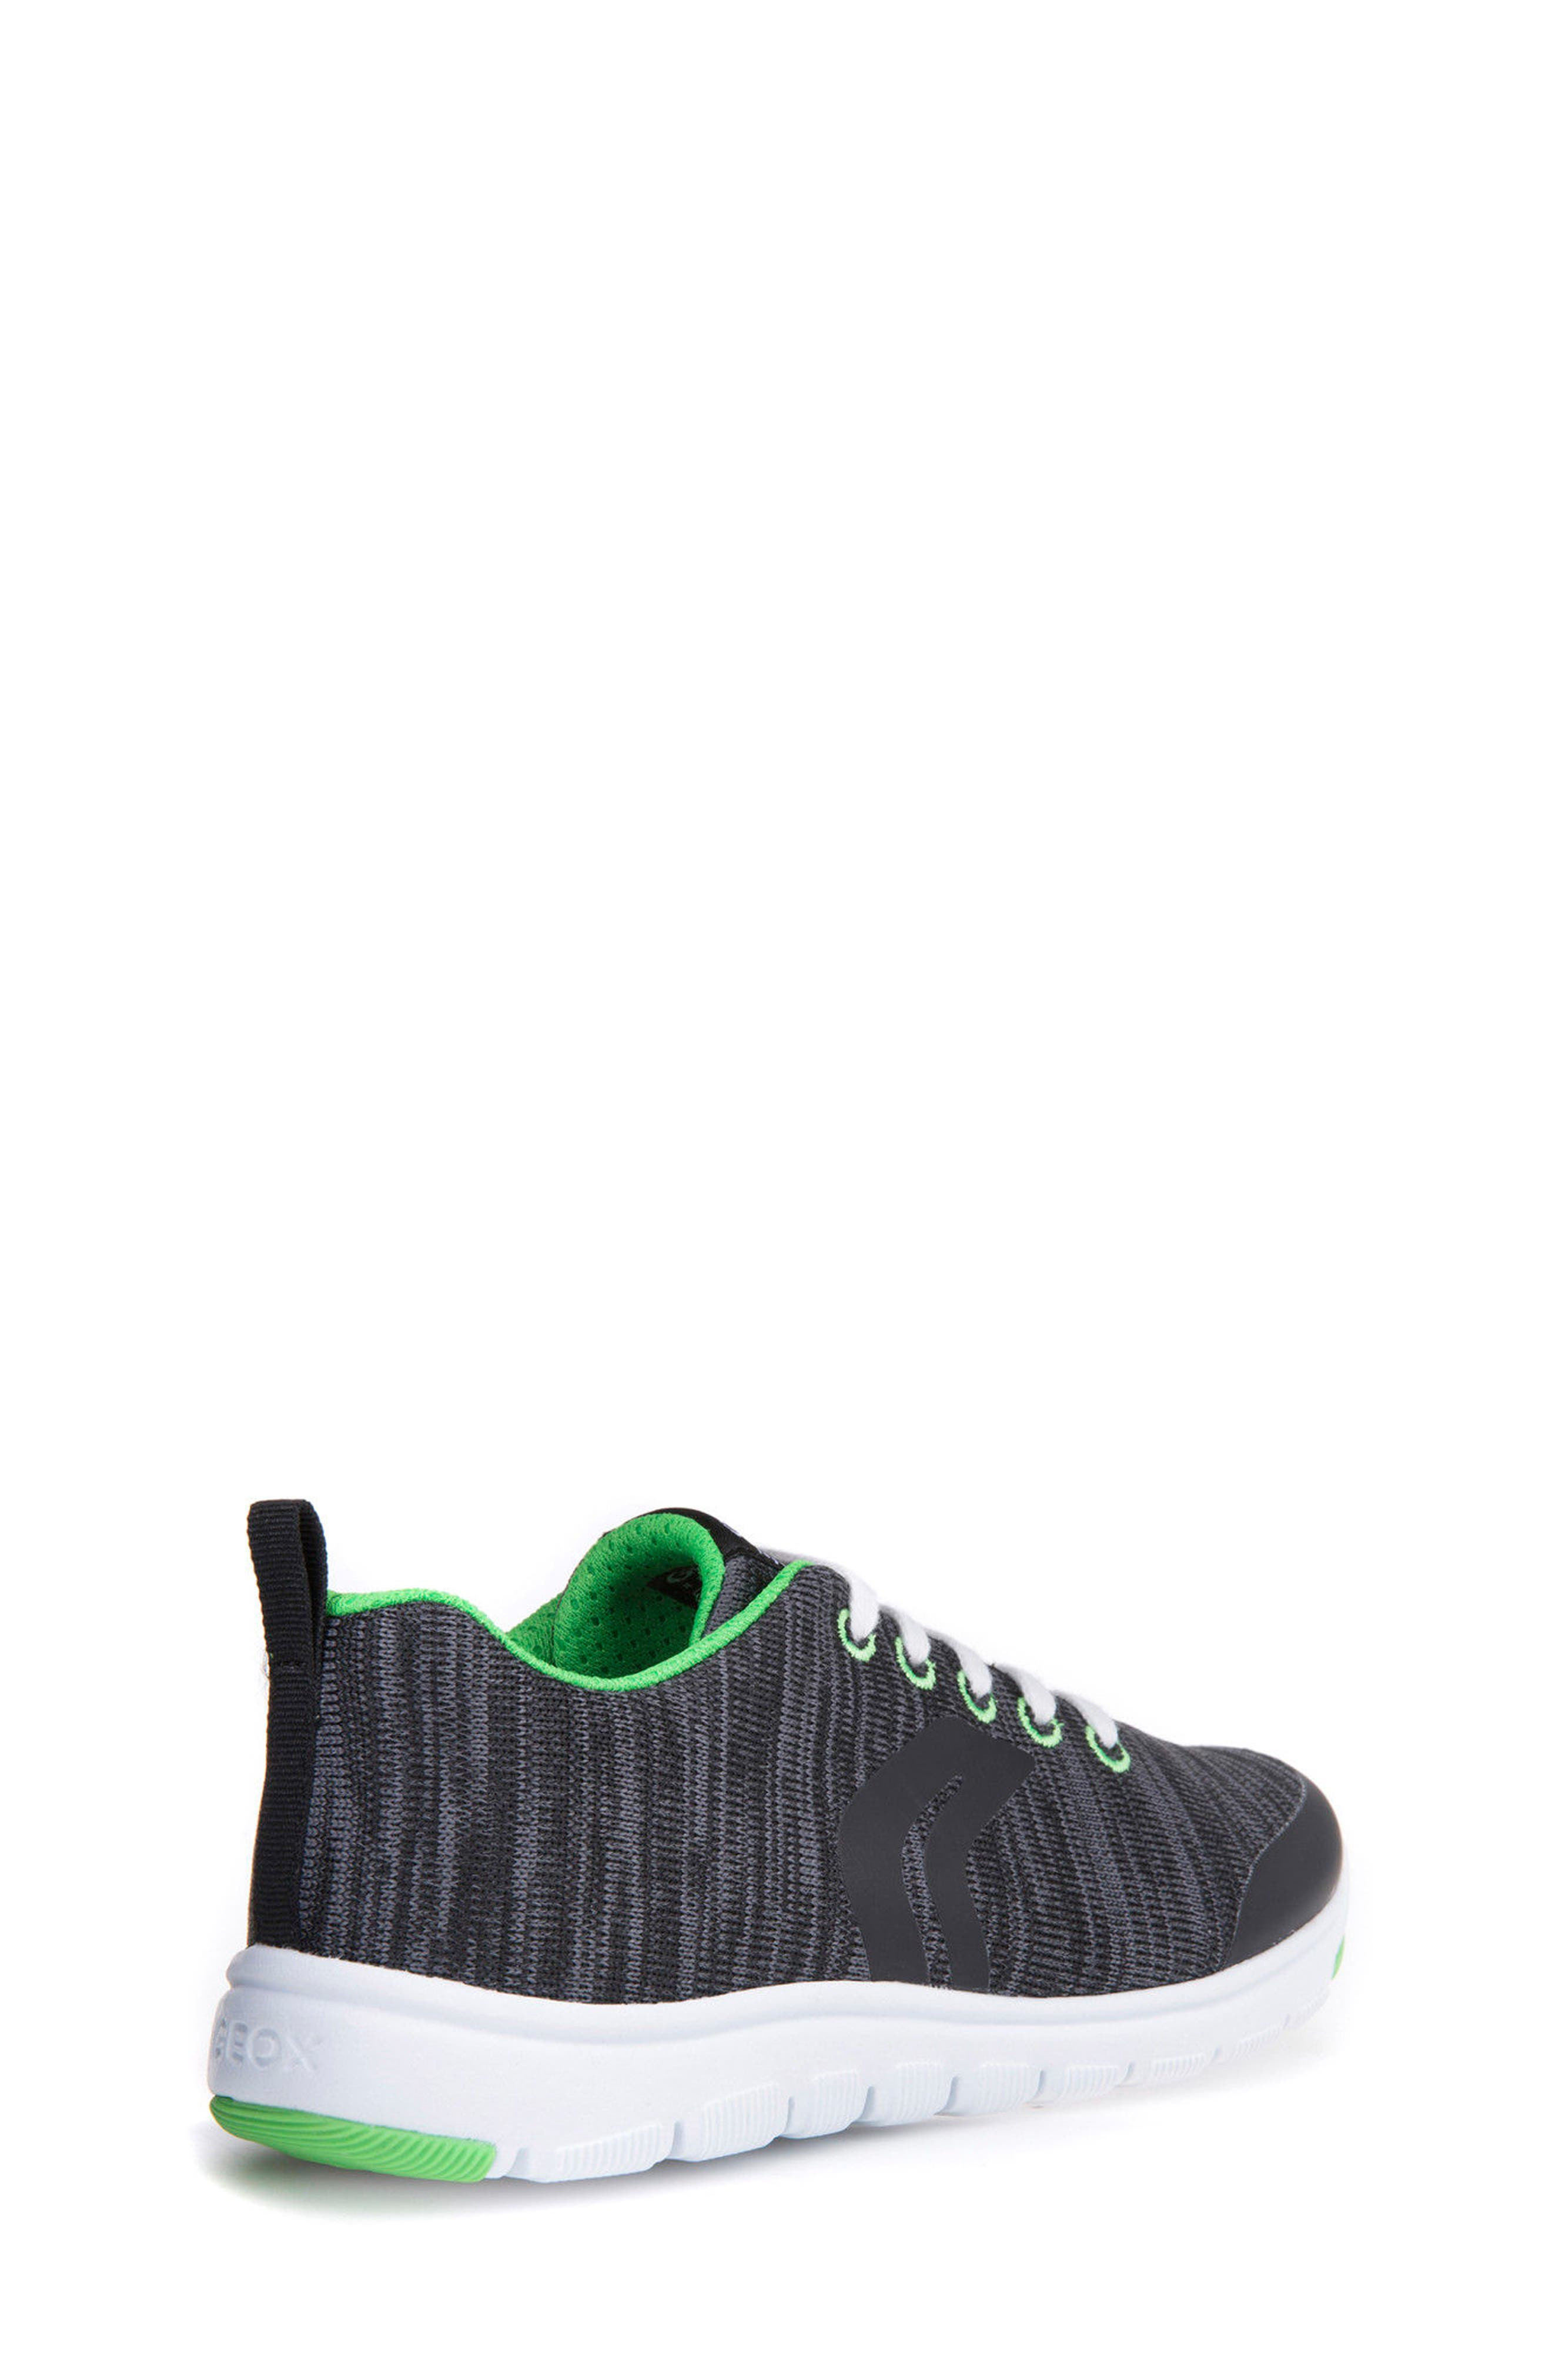 Xunday Performance Knit Low Top Sneaker,                             Alternate thumbnail 4, color,